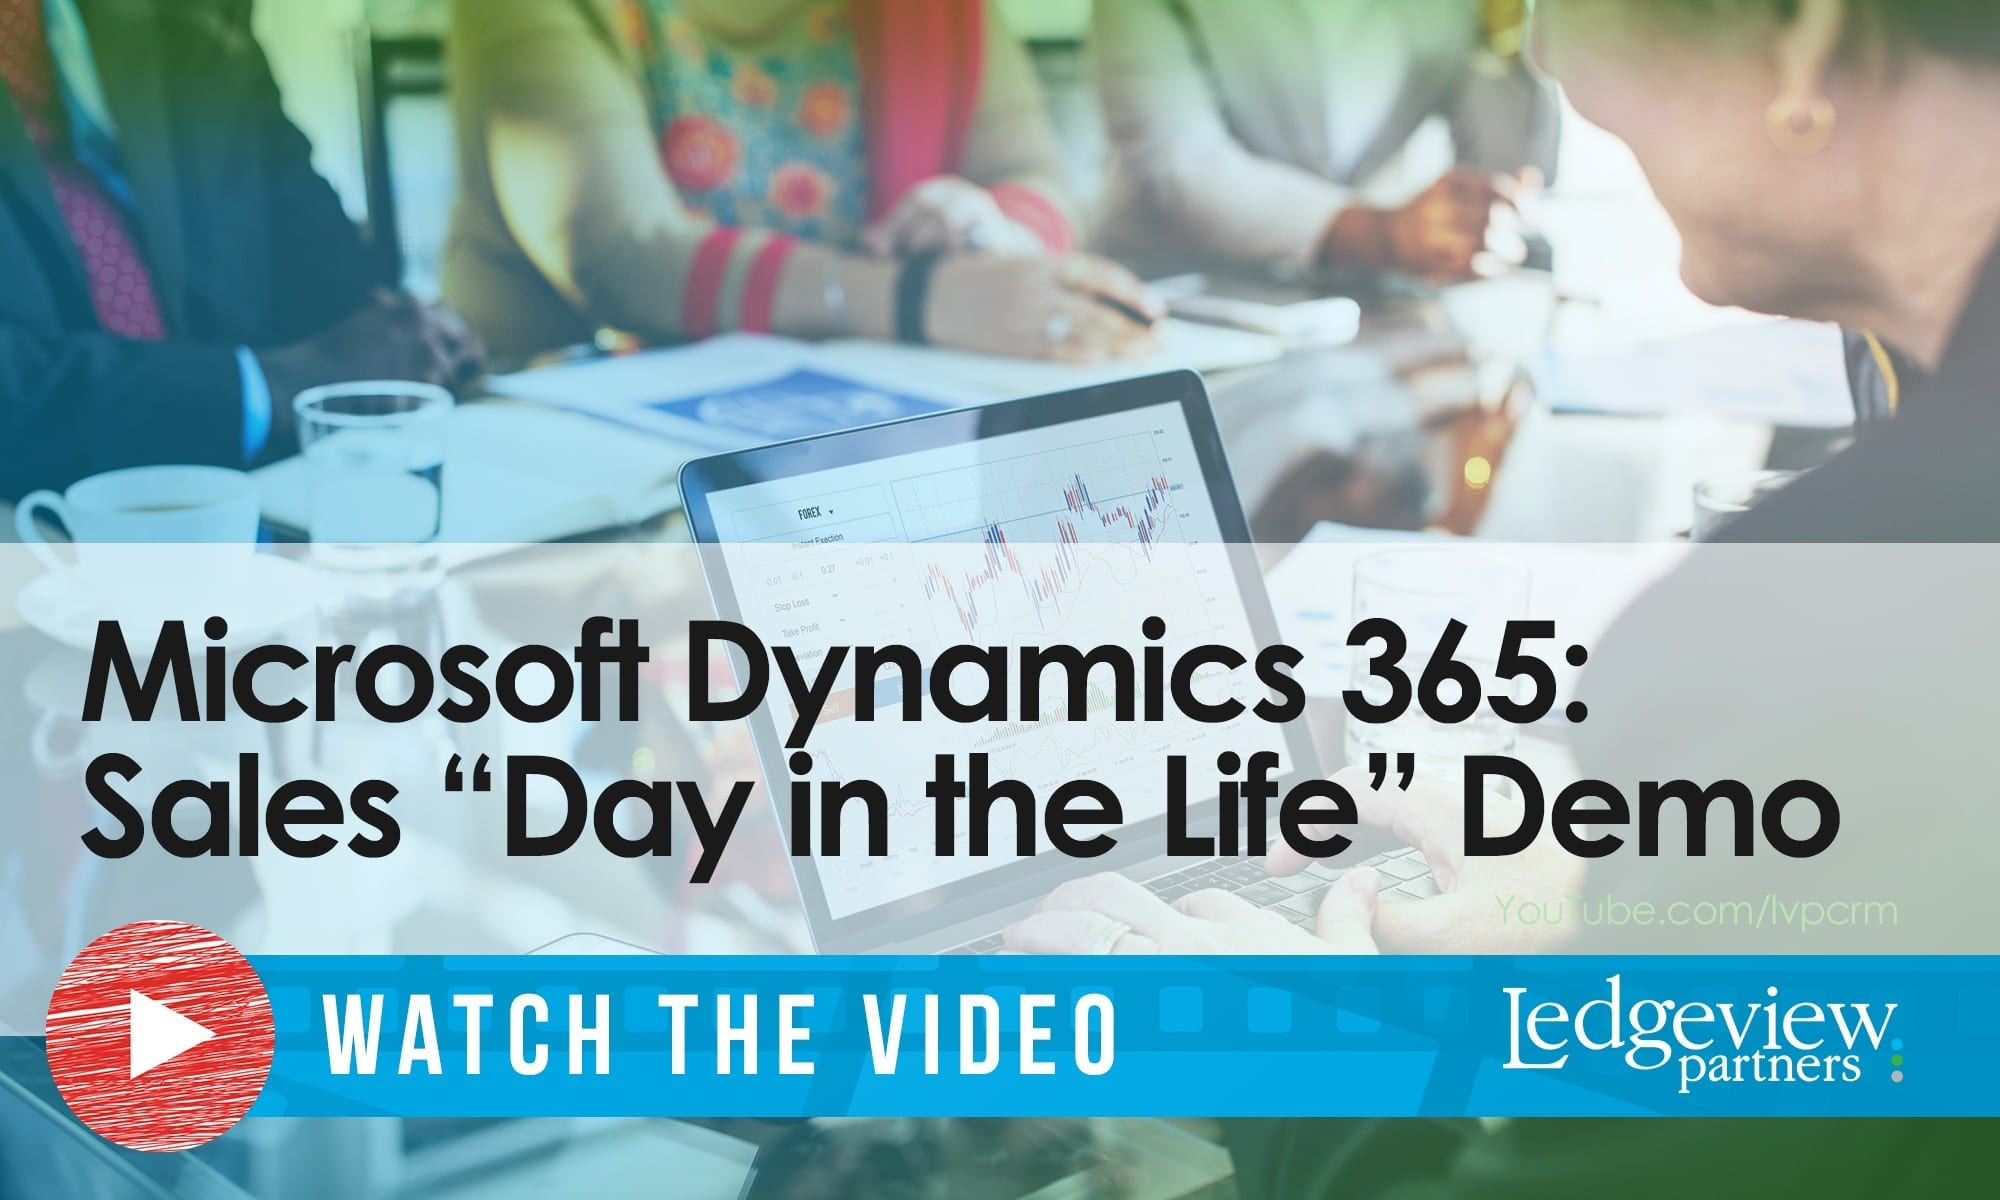 Microsoft Dynamics 365 Sales Day in the Life Demo - Ledgeview Partners